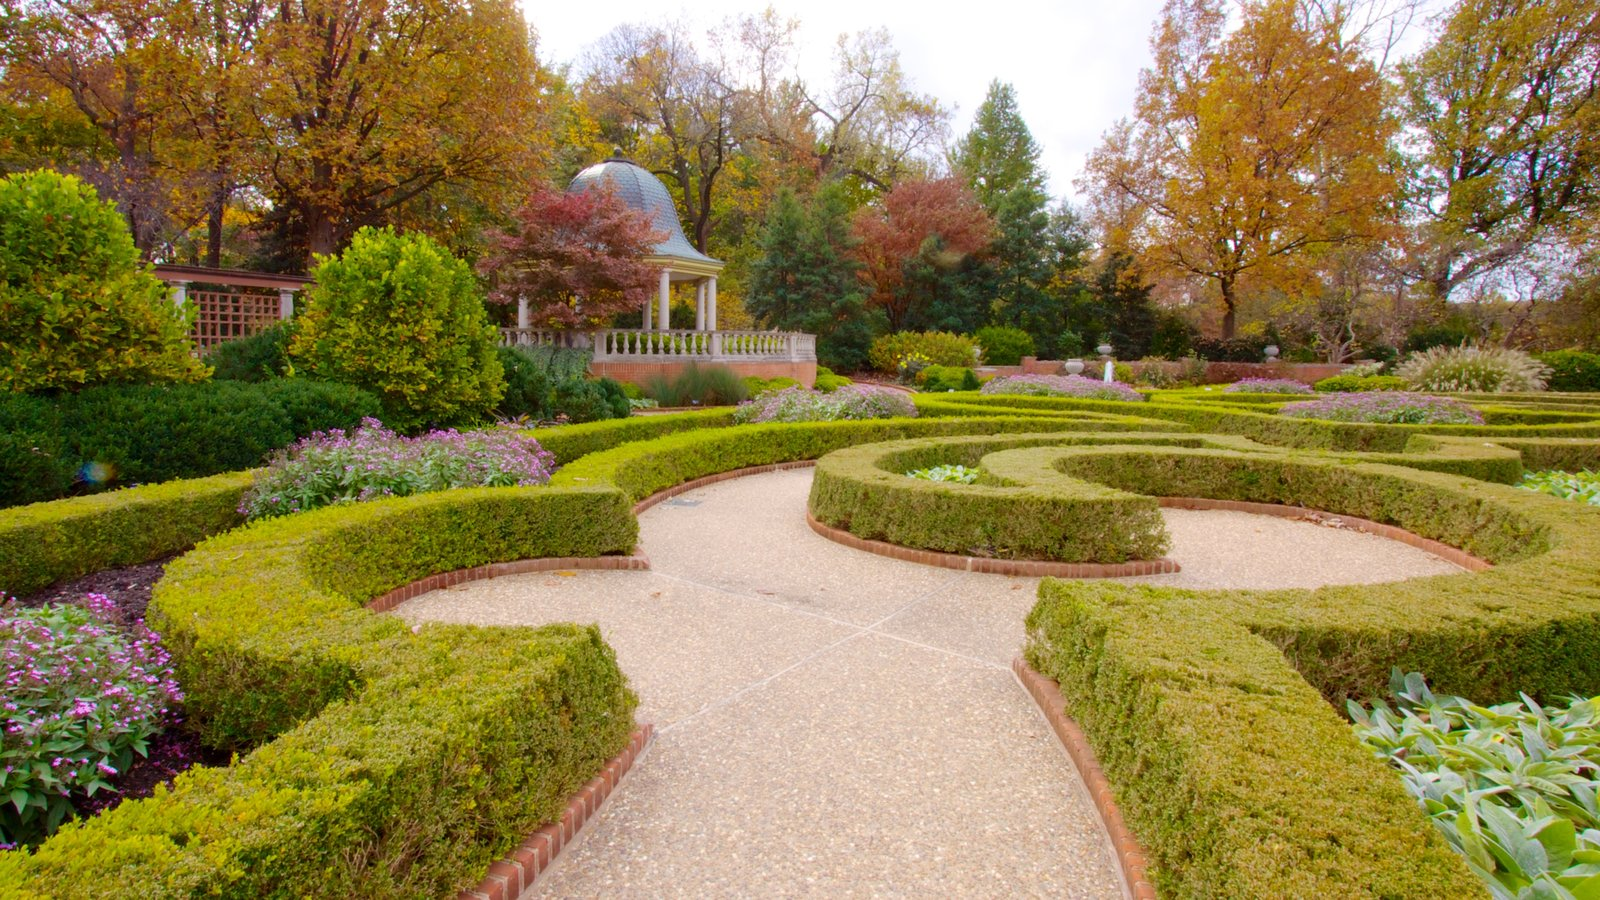 Missouri Botanical Gardens and Arboretum featuring a garden, fall colors and landscape views